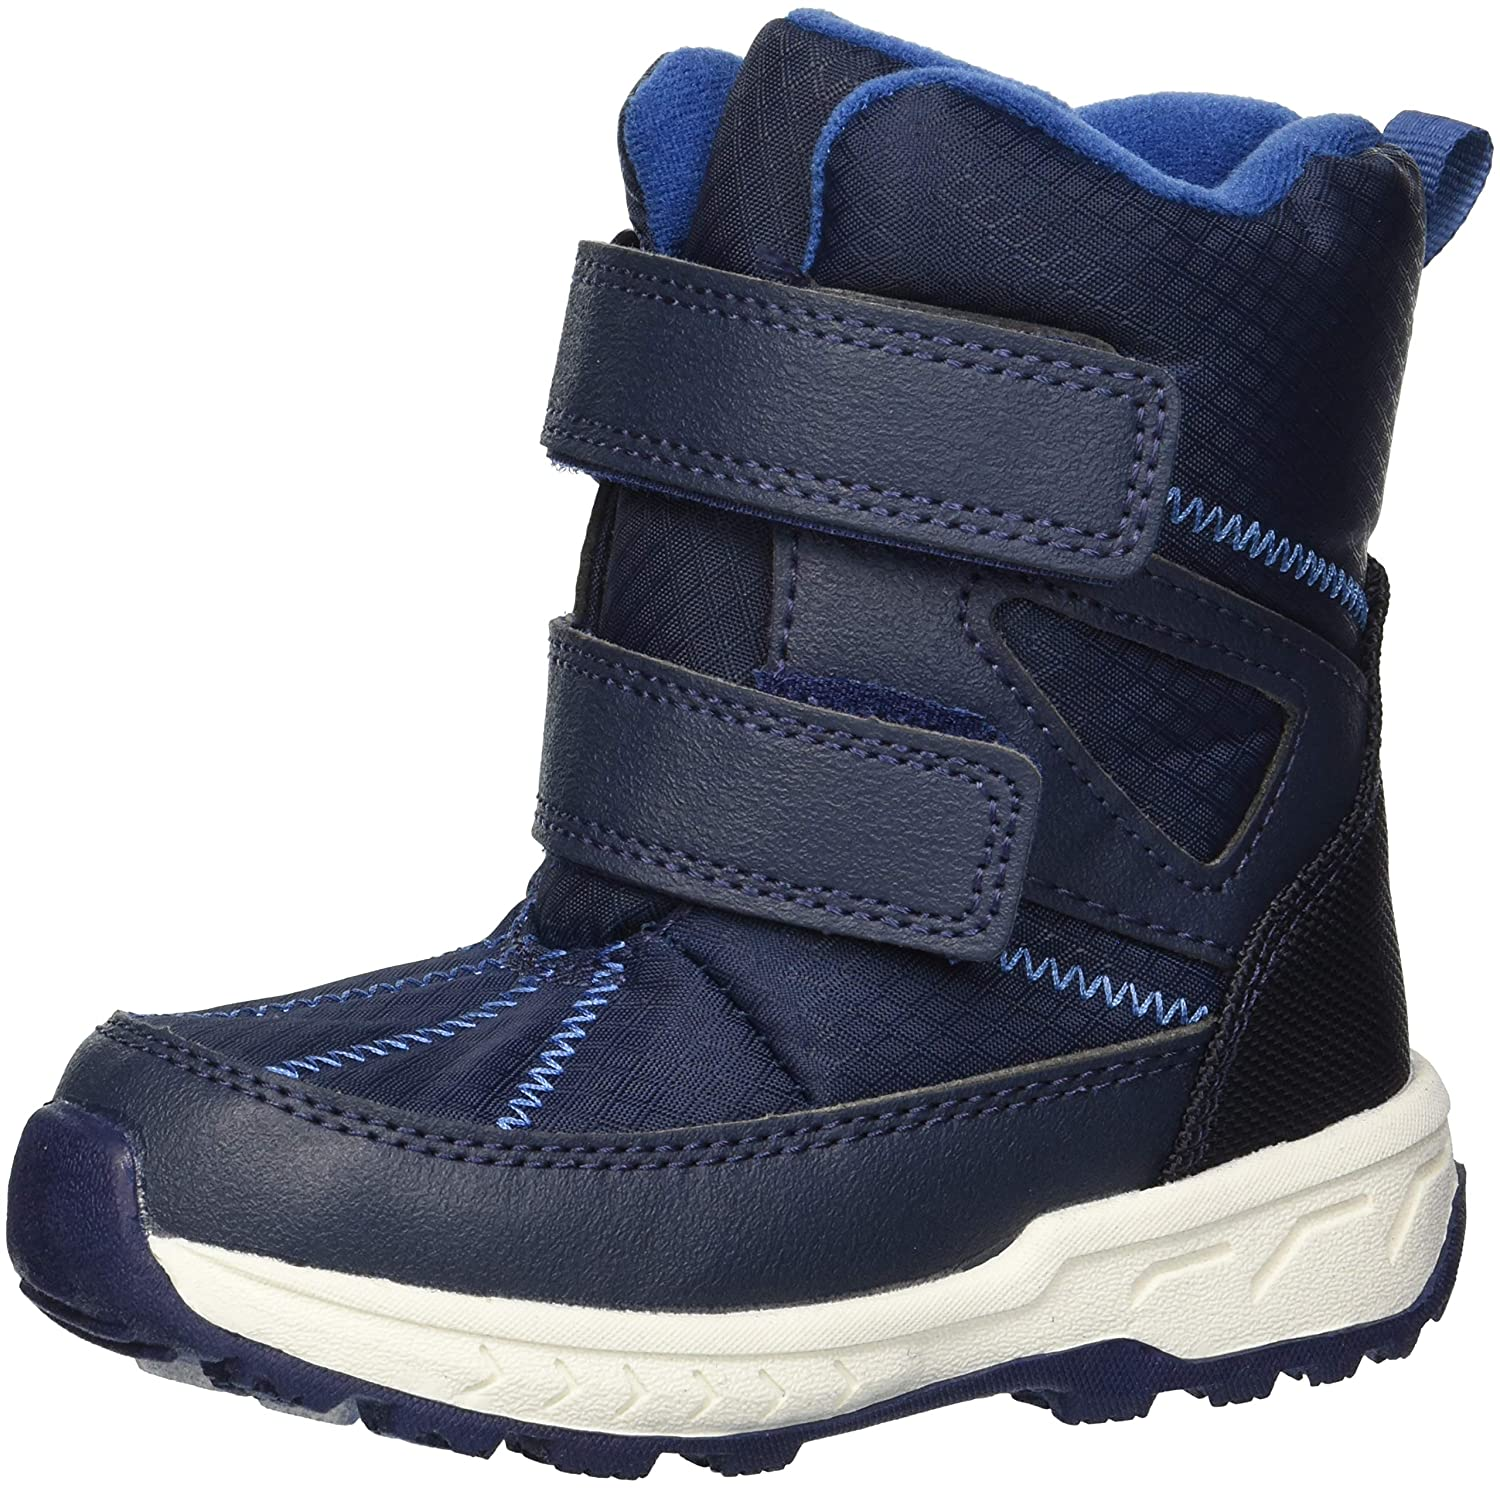 Carter's Kids Boy's Booth Navy Cold Weather Boot Snow Carter' s CF180282